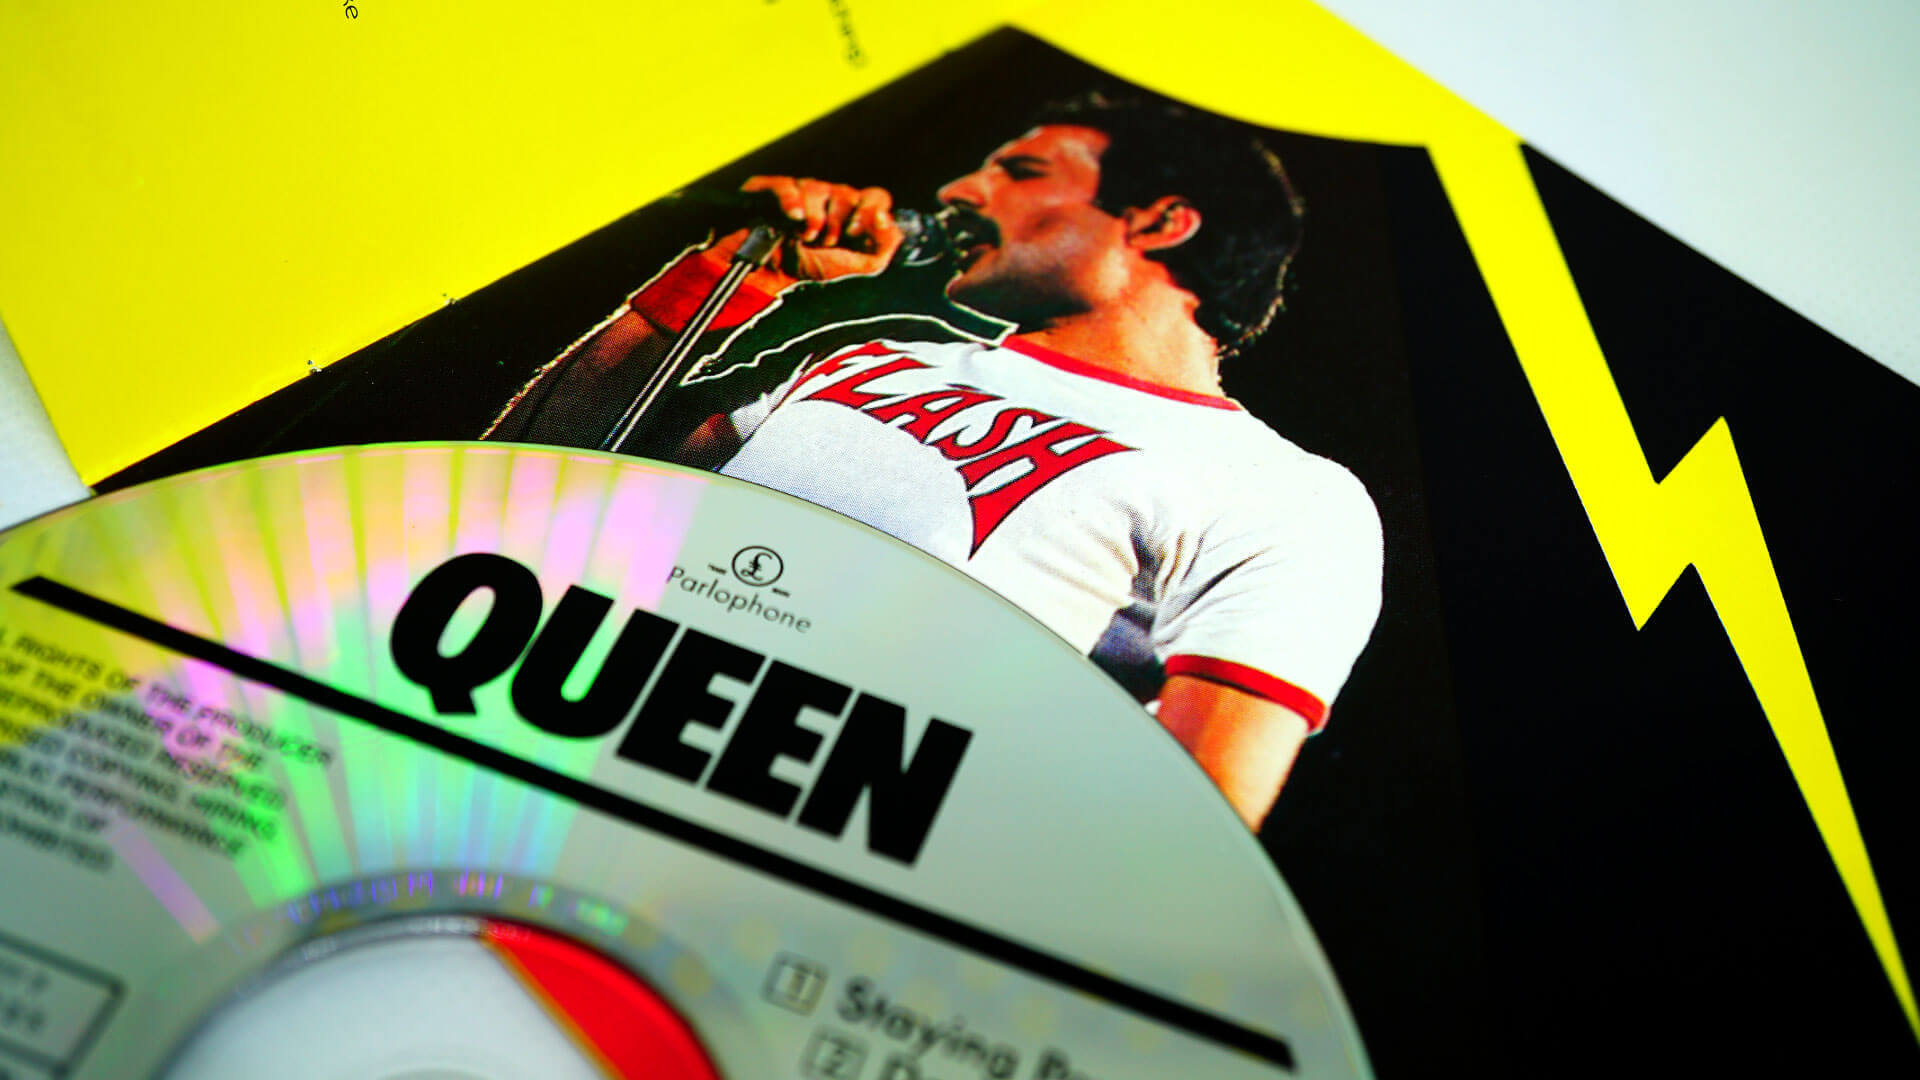 Freddy Mercury y un concierto de lecciones de marketing